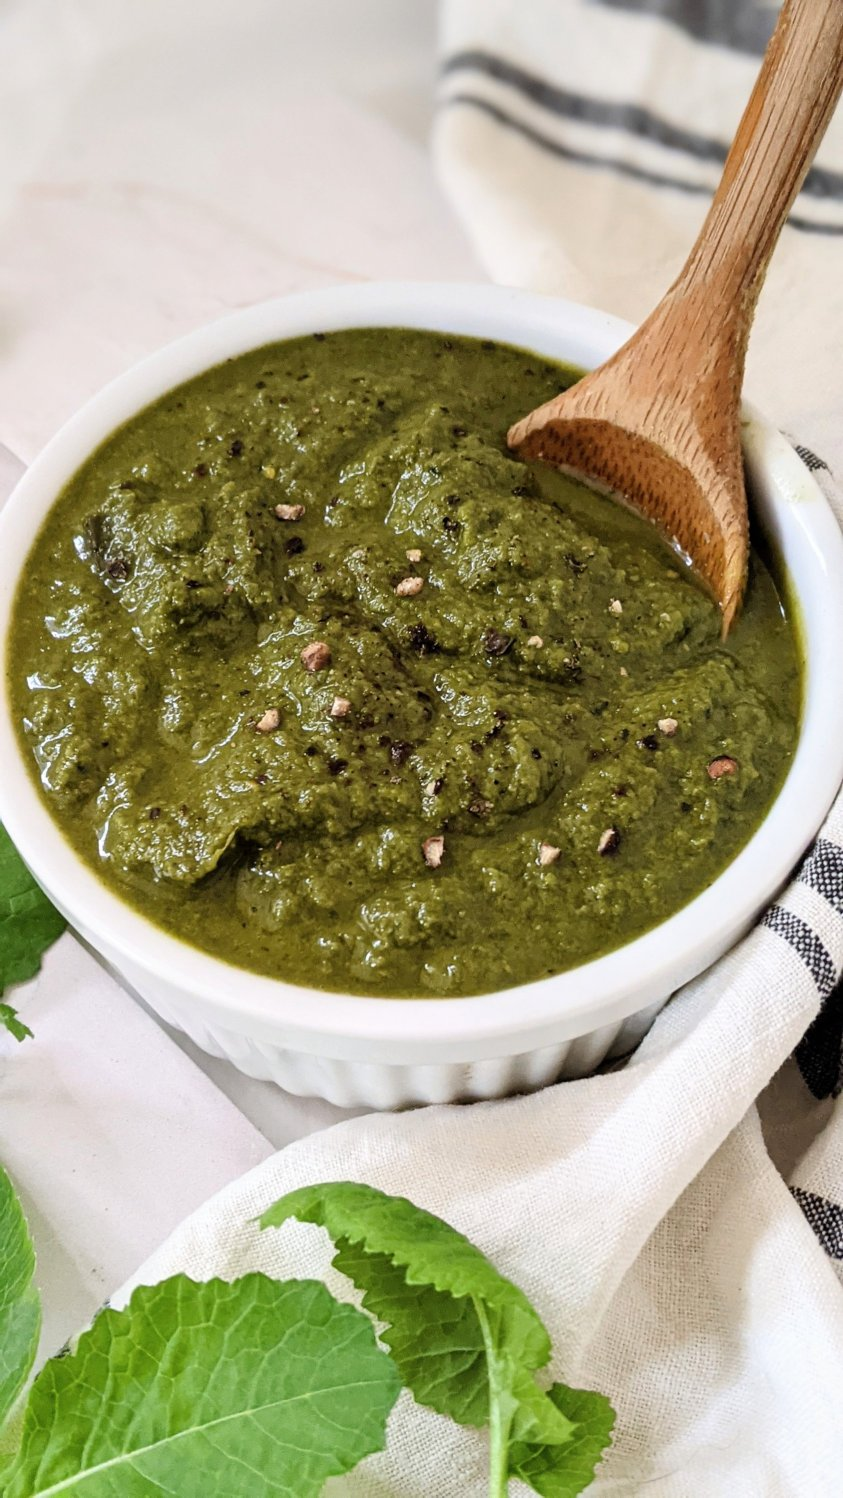 beet top pesto recipe can i eat beet greens recipes for beet greens what to do with beet tops